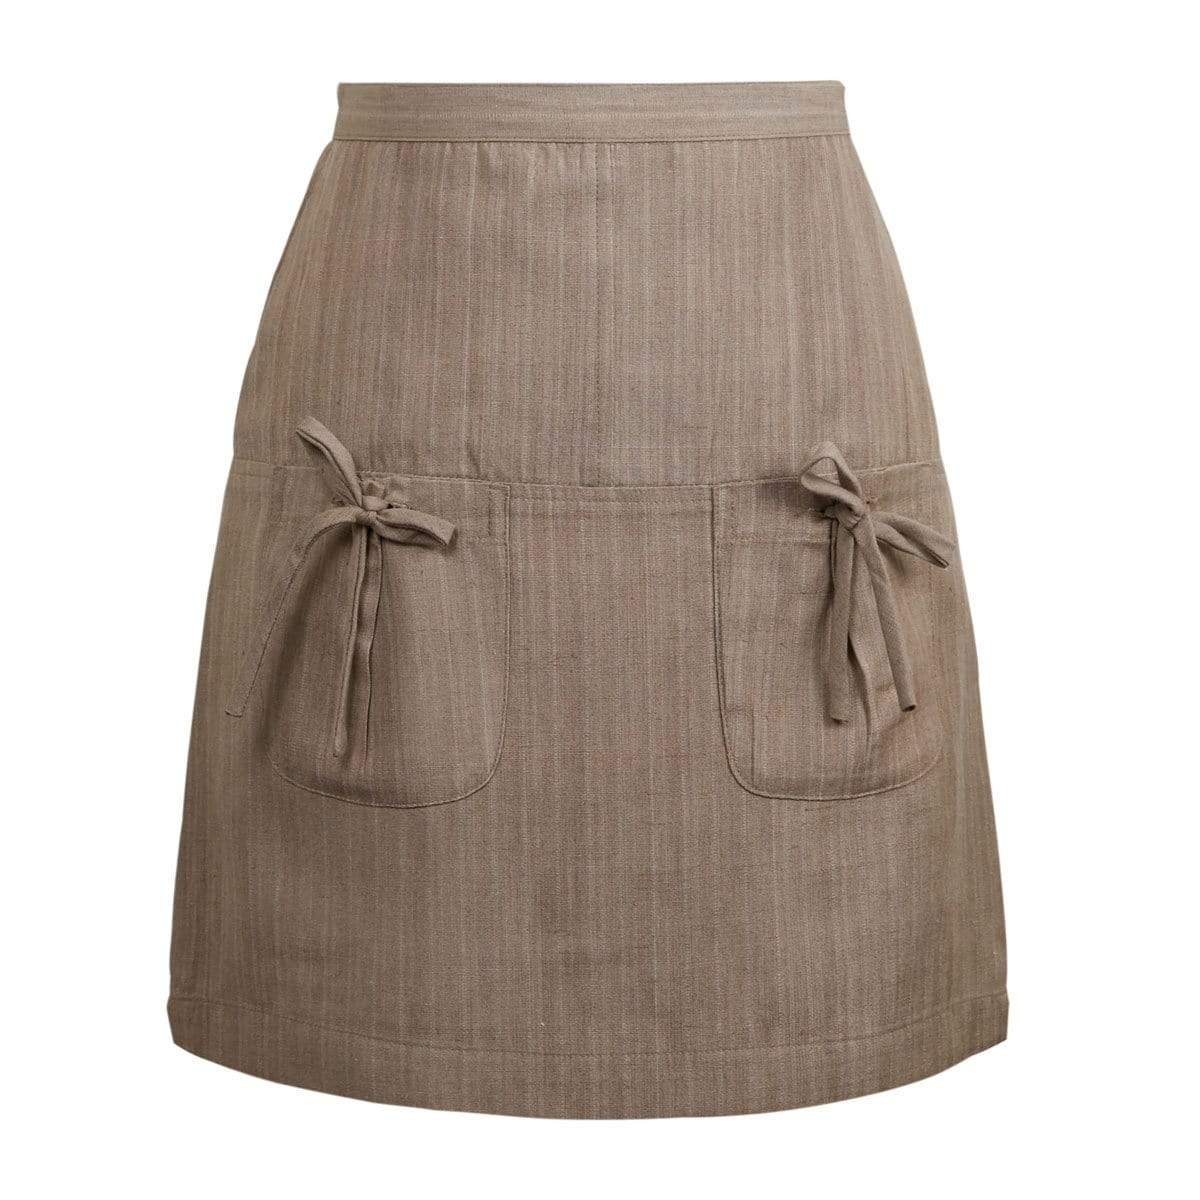 TAKTAI Skirt S / Brown Poet Skirt